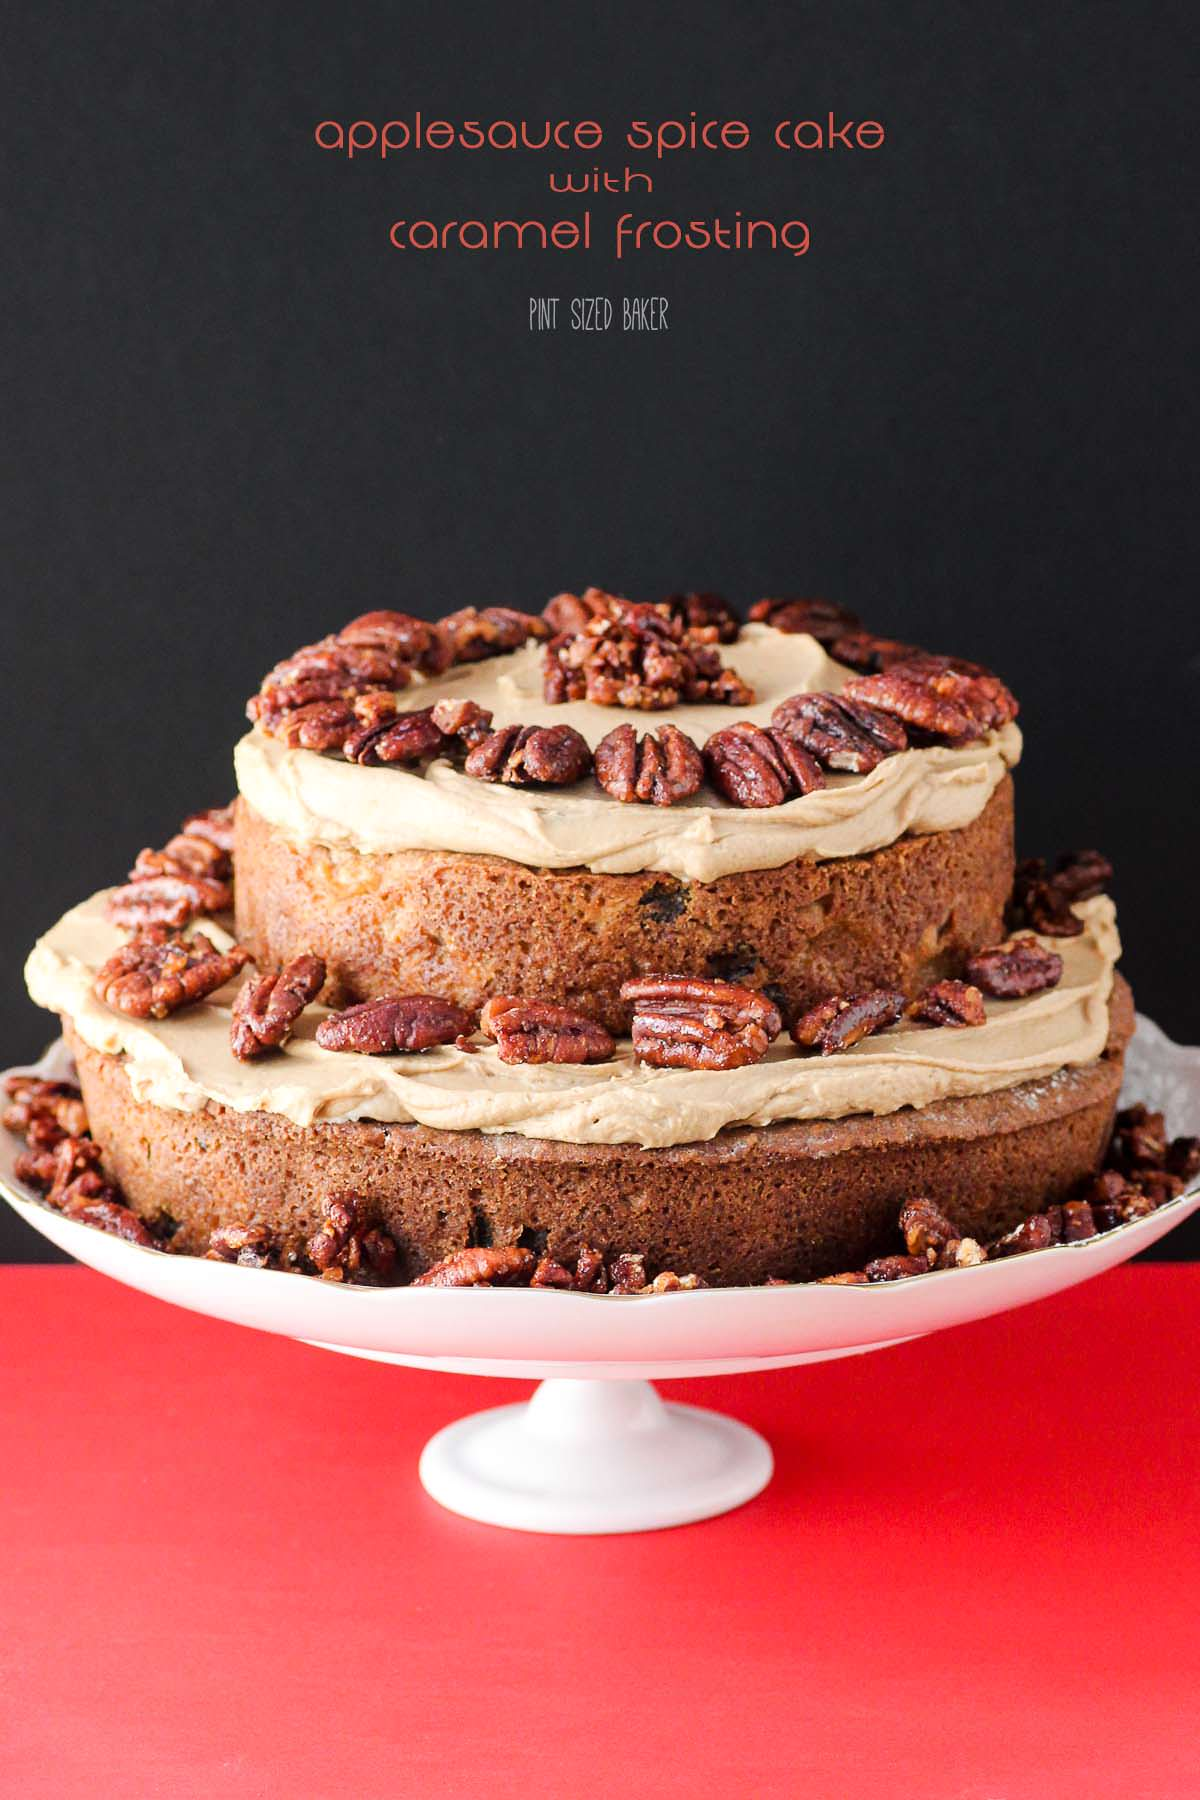 The time is NOW to make this Applesauce Cake with Caramel Frosting. It's a fall recipe you must make!